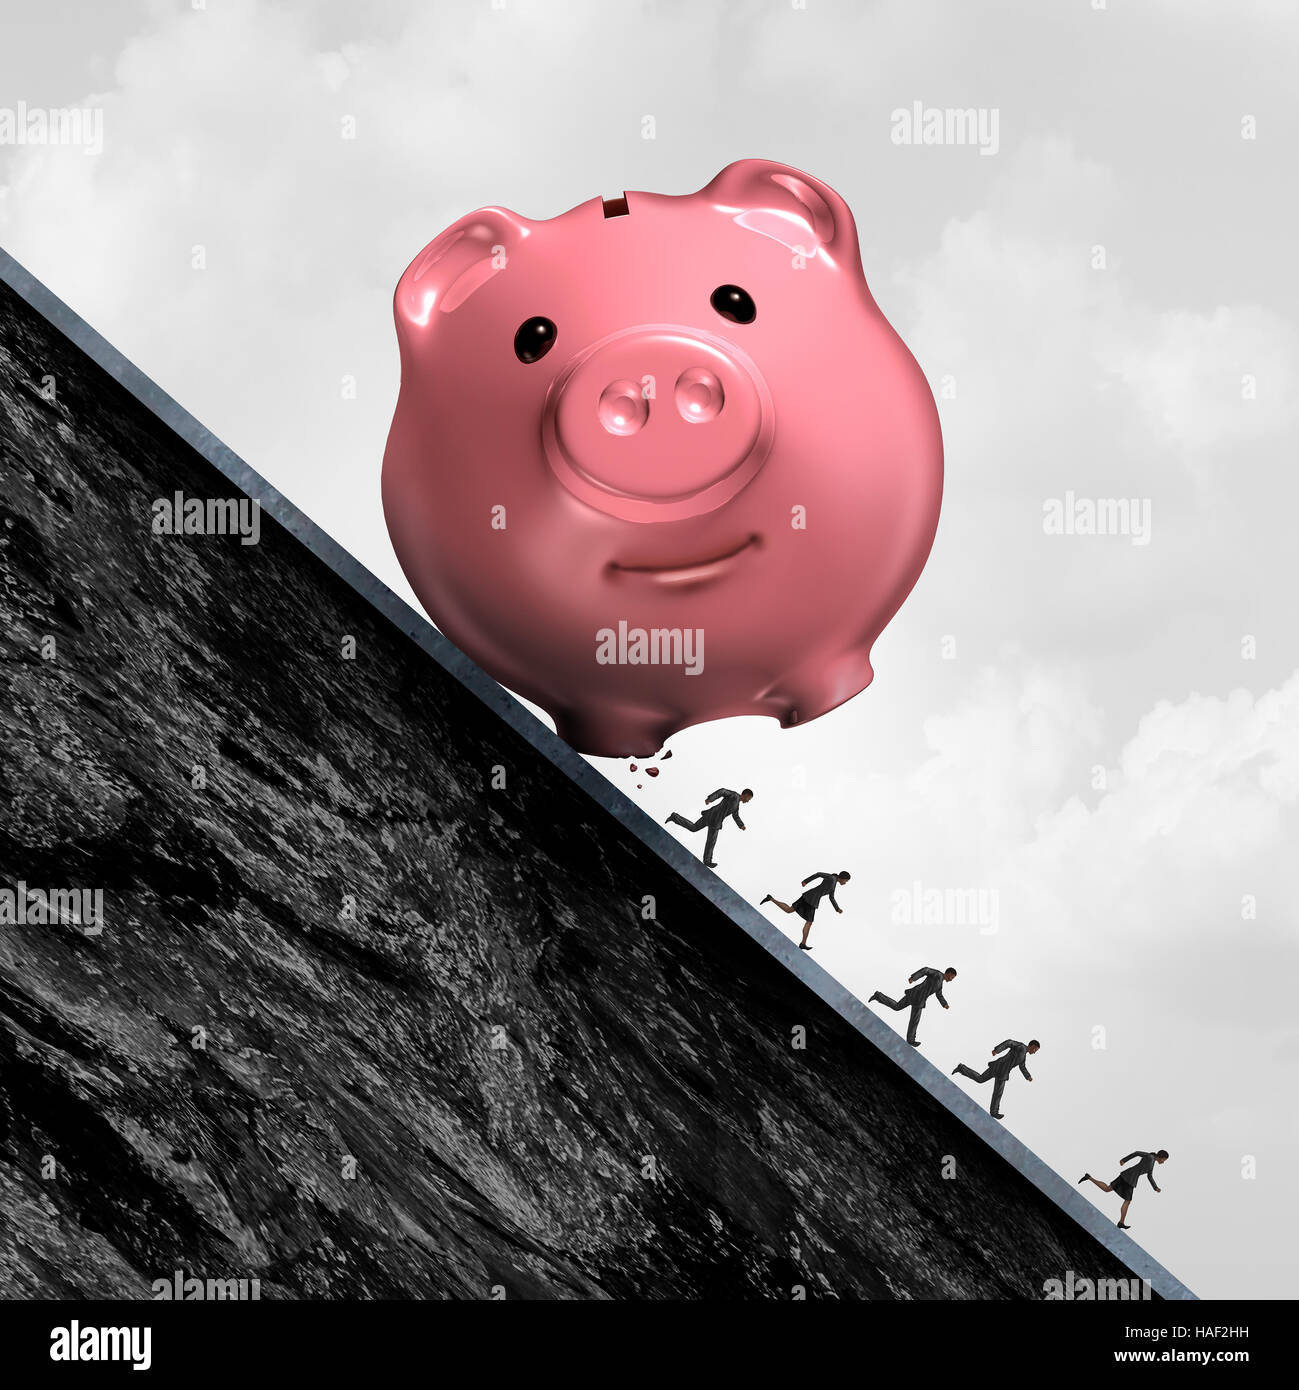 Financial debt pressure and accounting expenses stress as a piggy bank rolling down a hill with people running away Stock Photo